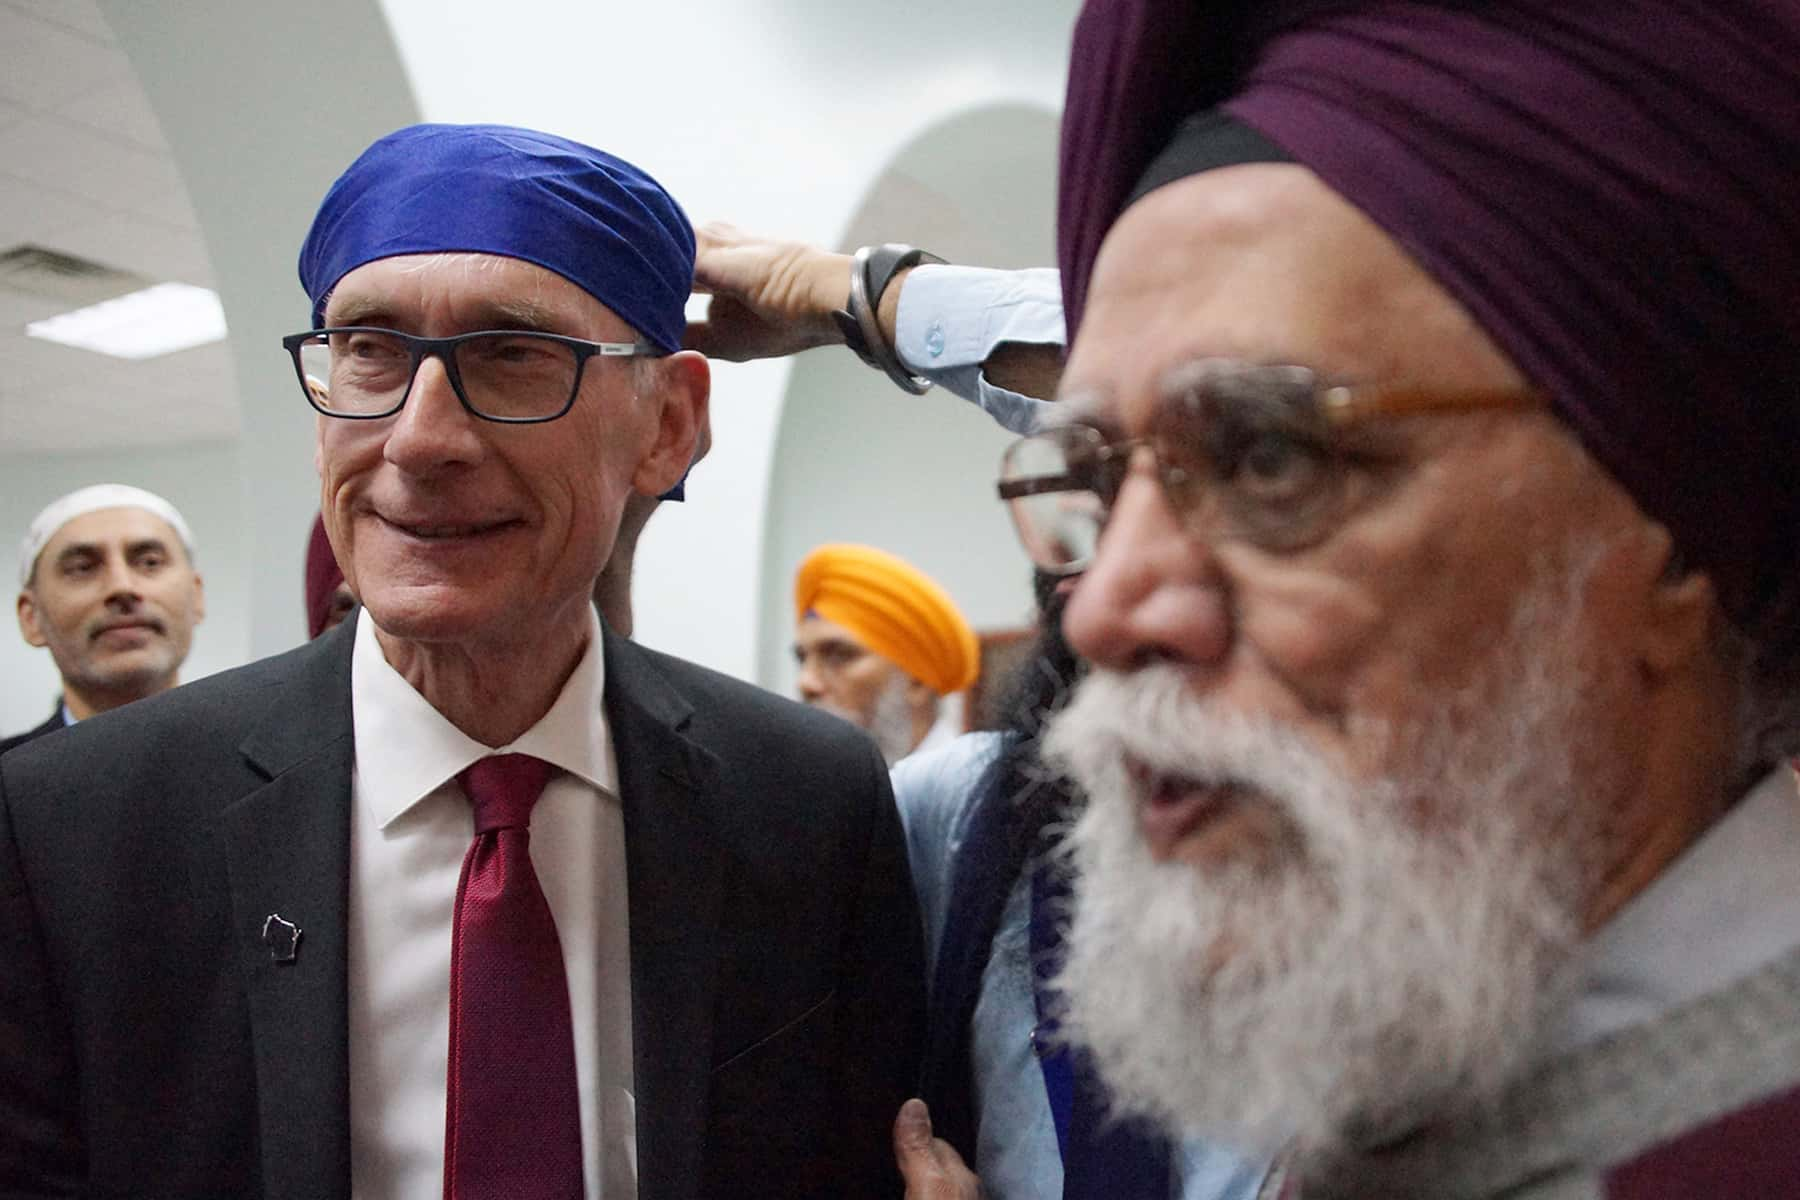 04_043019_sikhtempleevers_0617